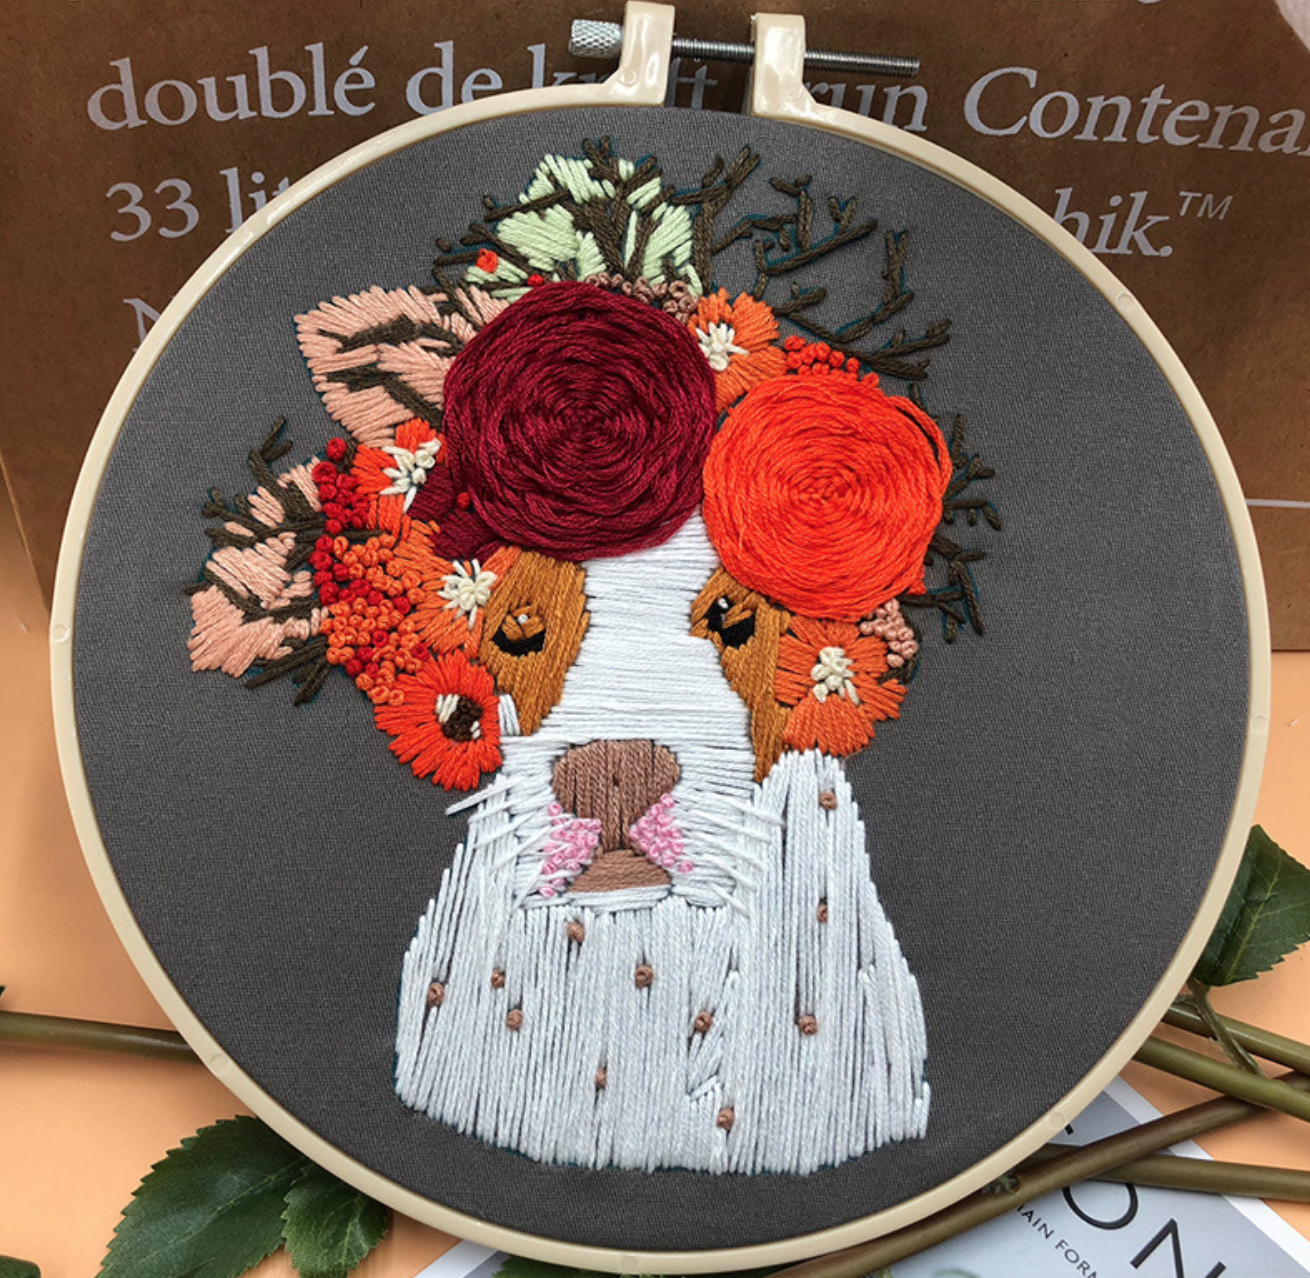 Spot White Dog with Orange Wreath Embroidery